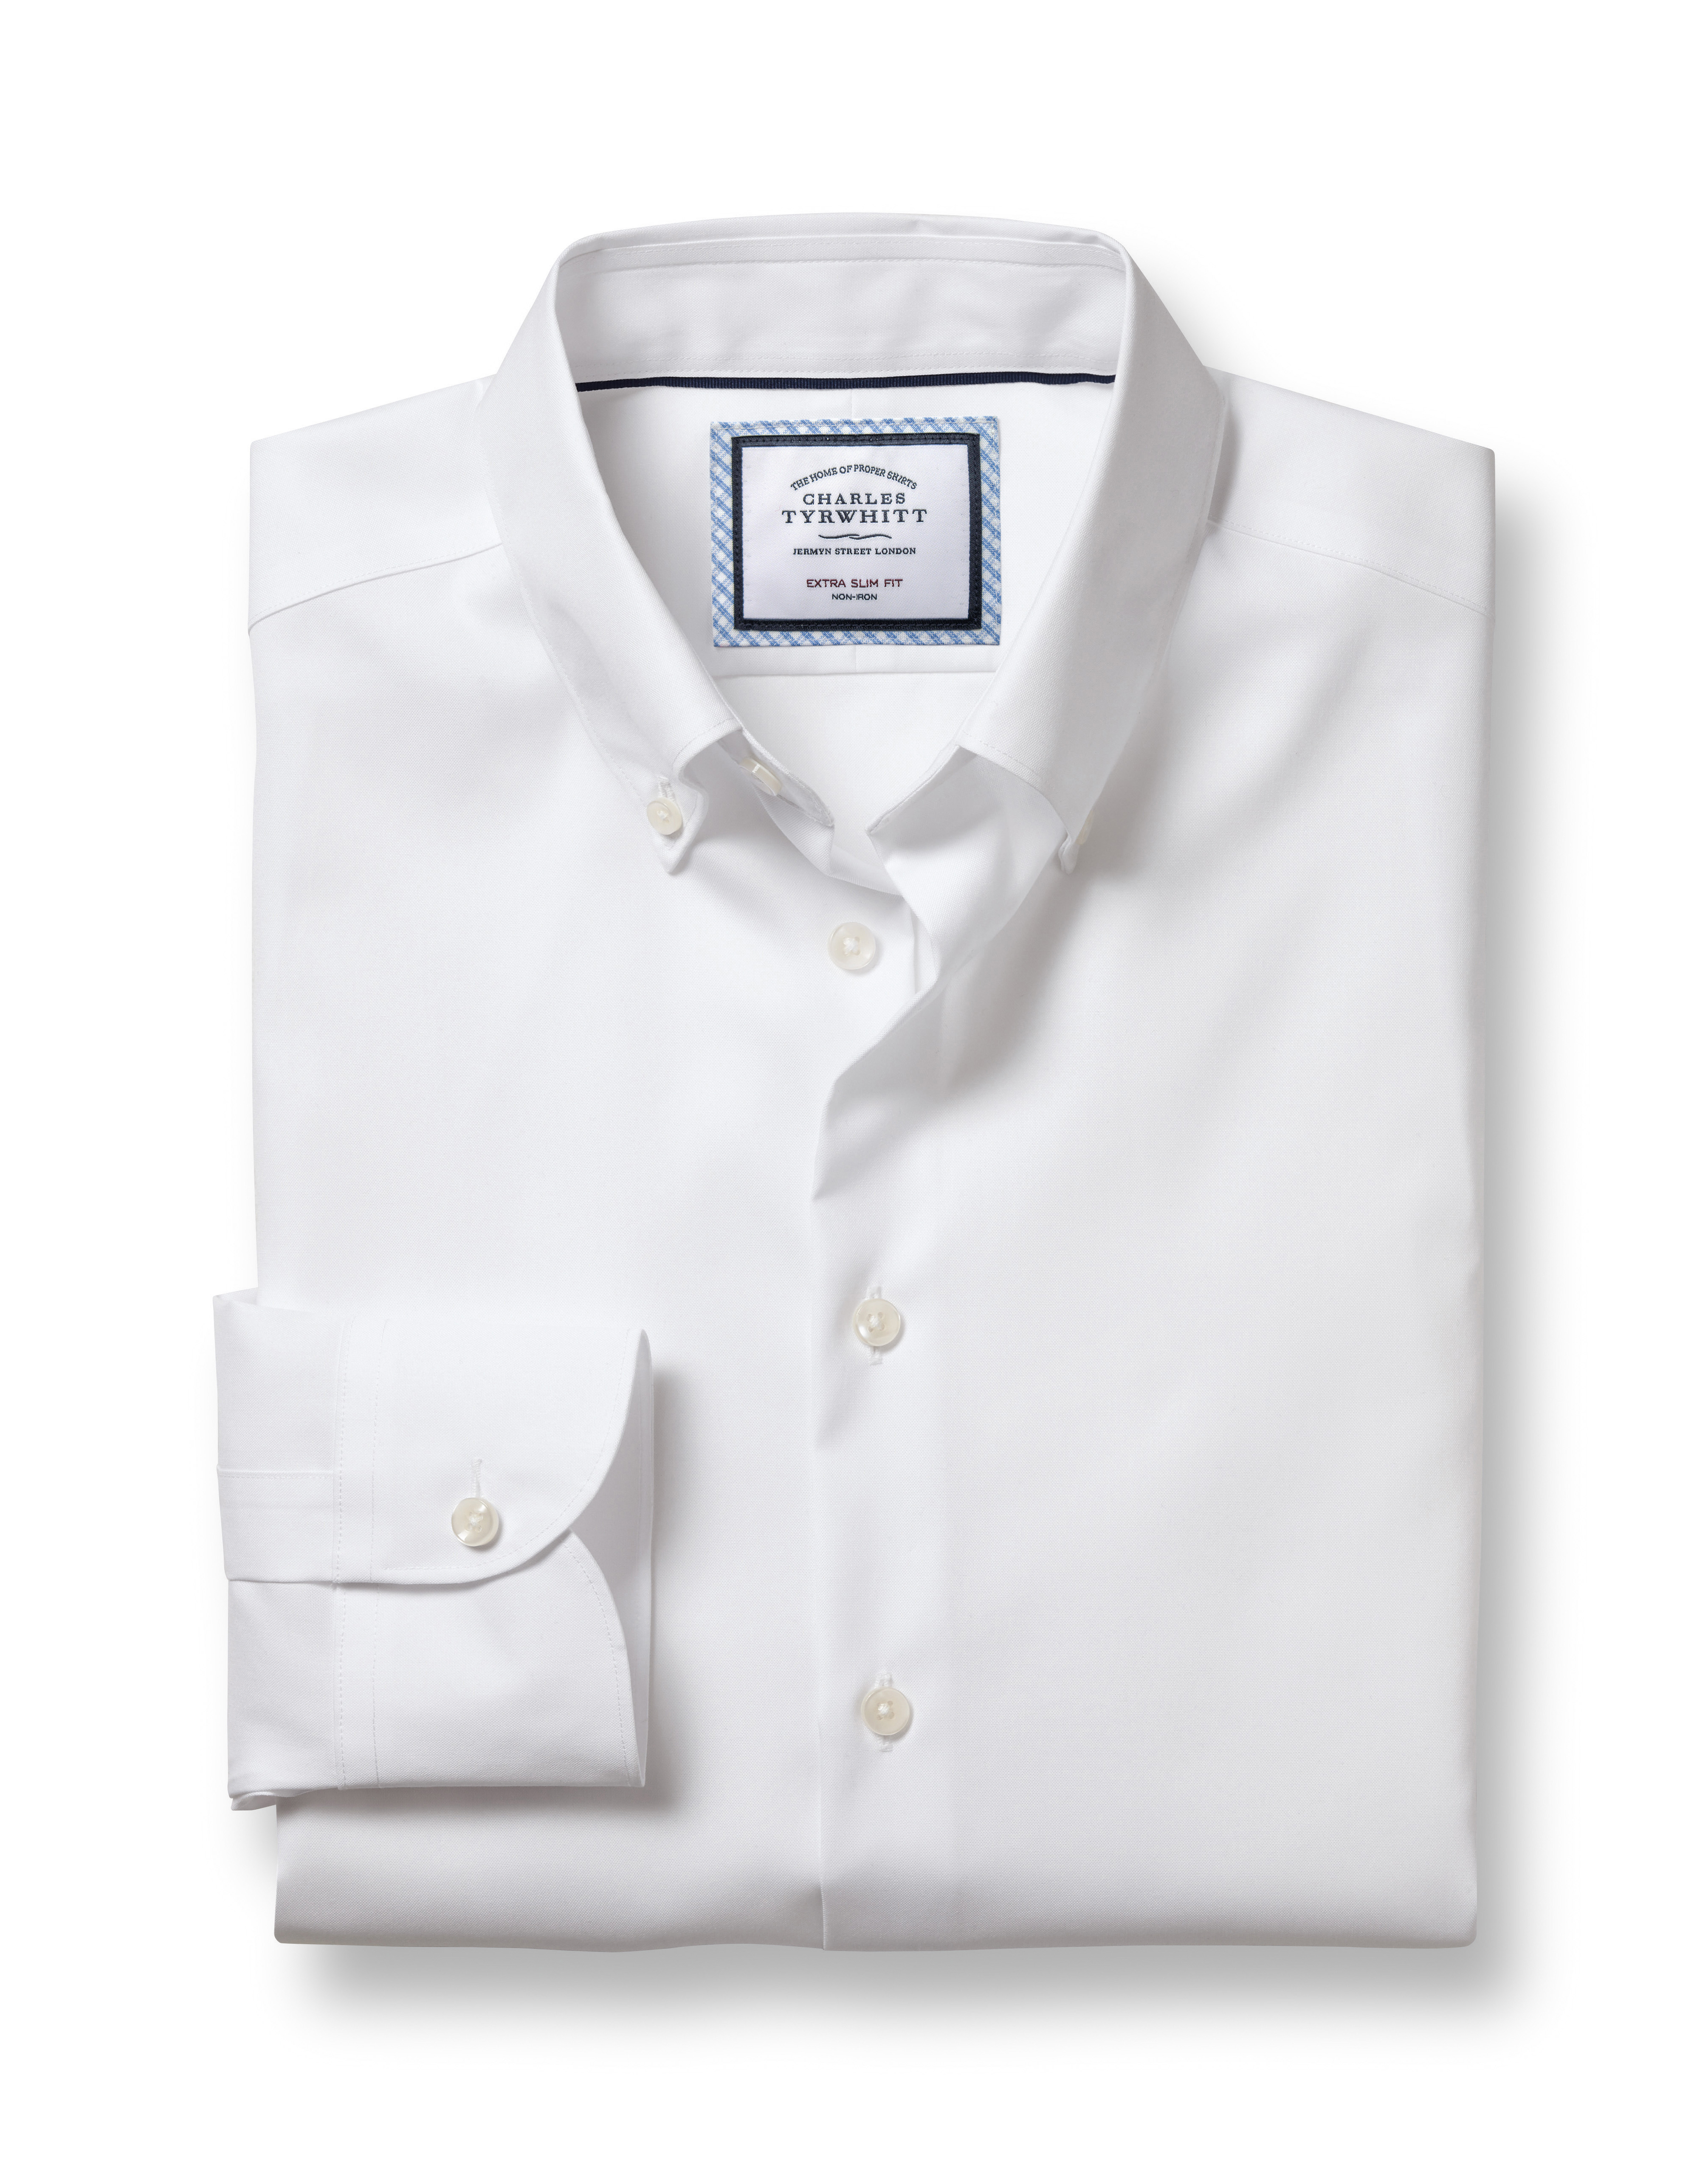 Slim Fit Button-Down Business Casual Non-Iron White Cotton Formal Shirt Single Cuff Size 15/35 by Ch